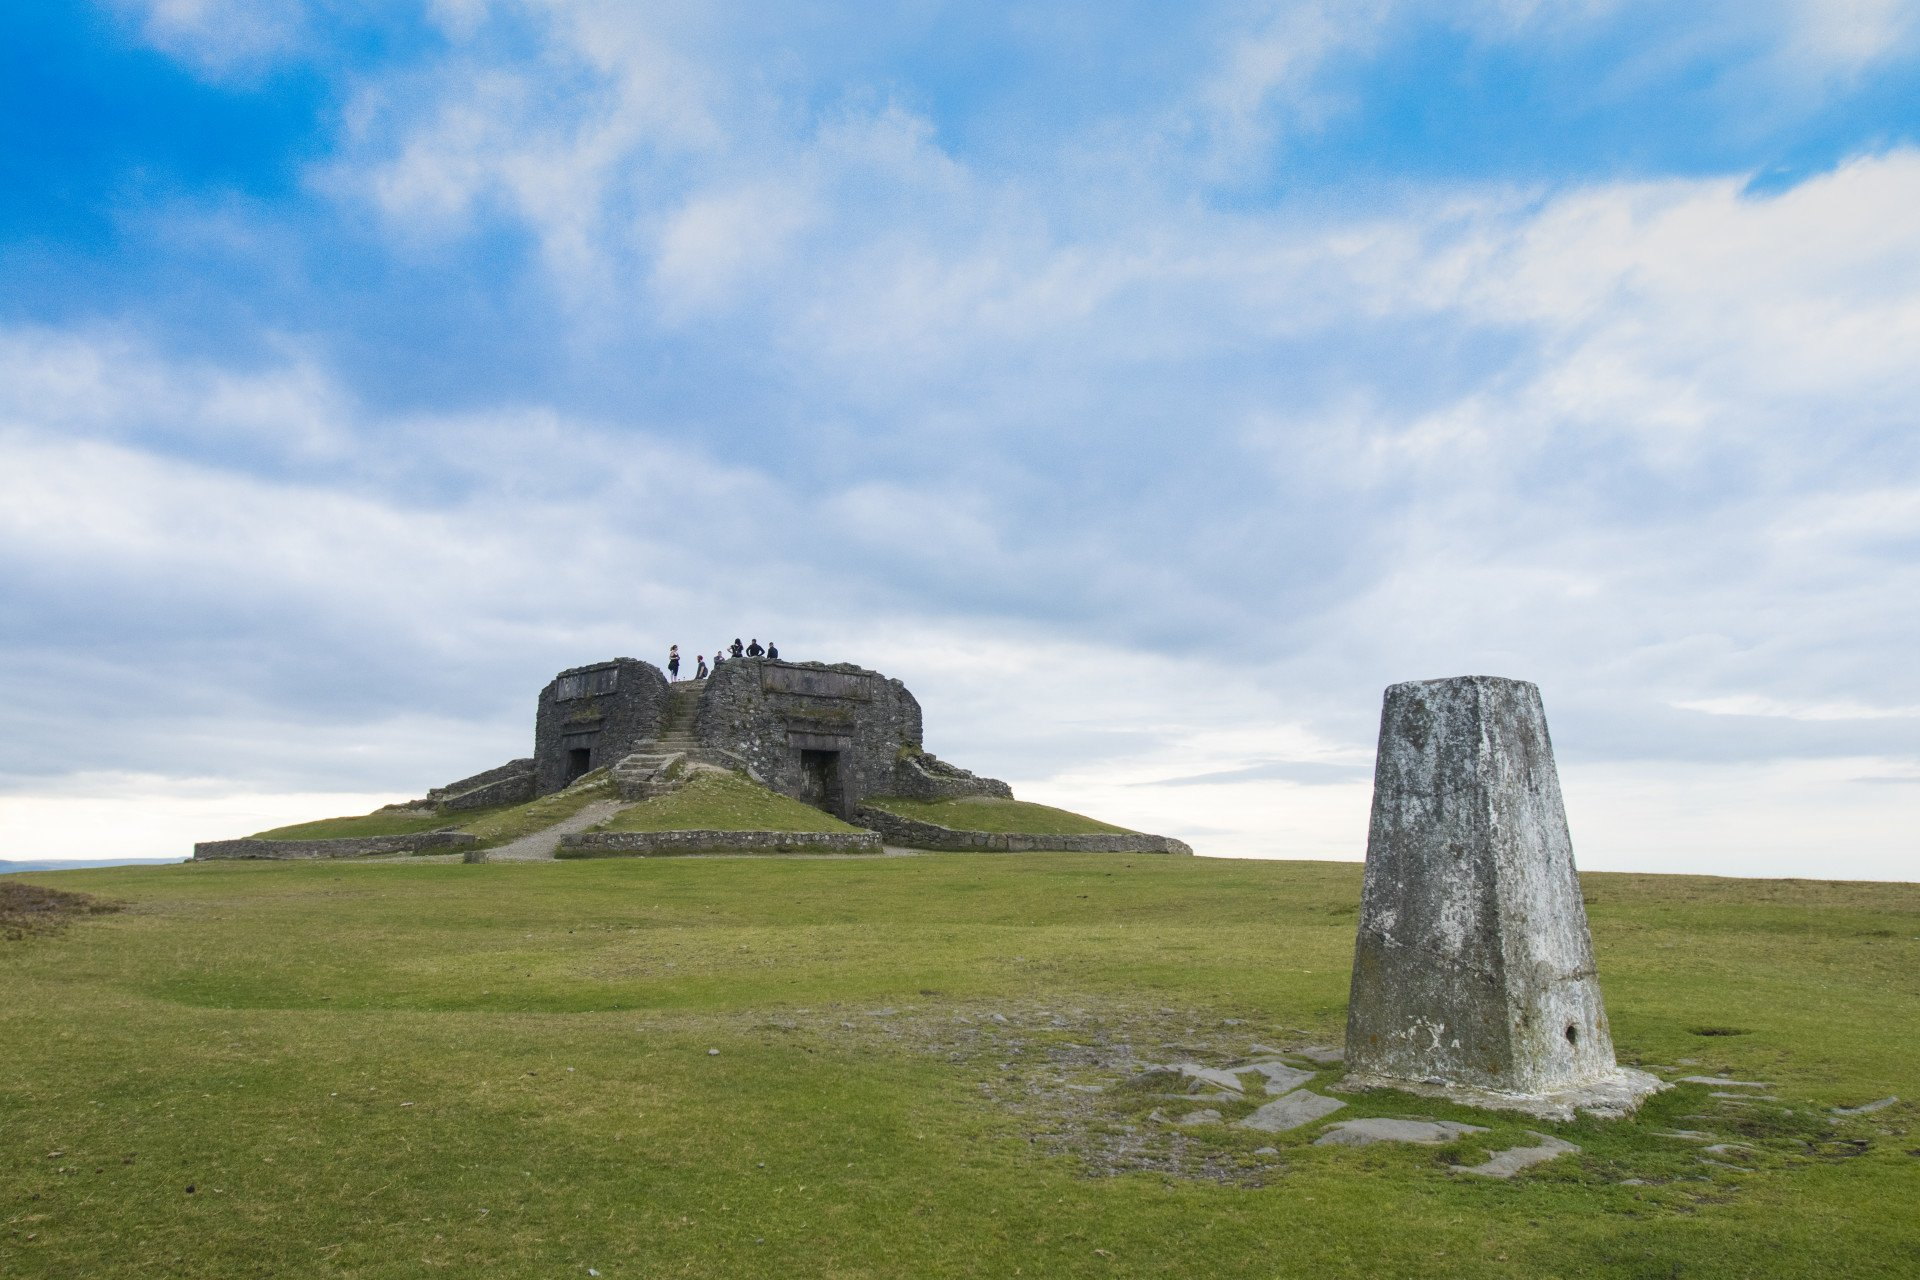 North East Wales Heritage Trail